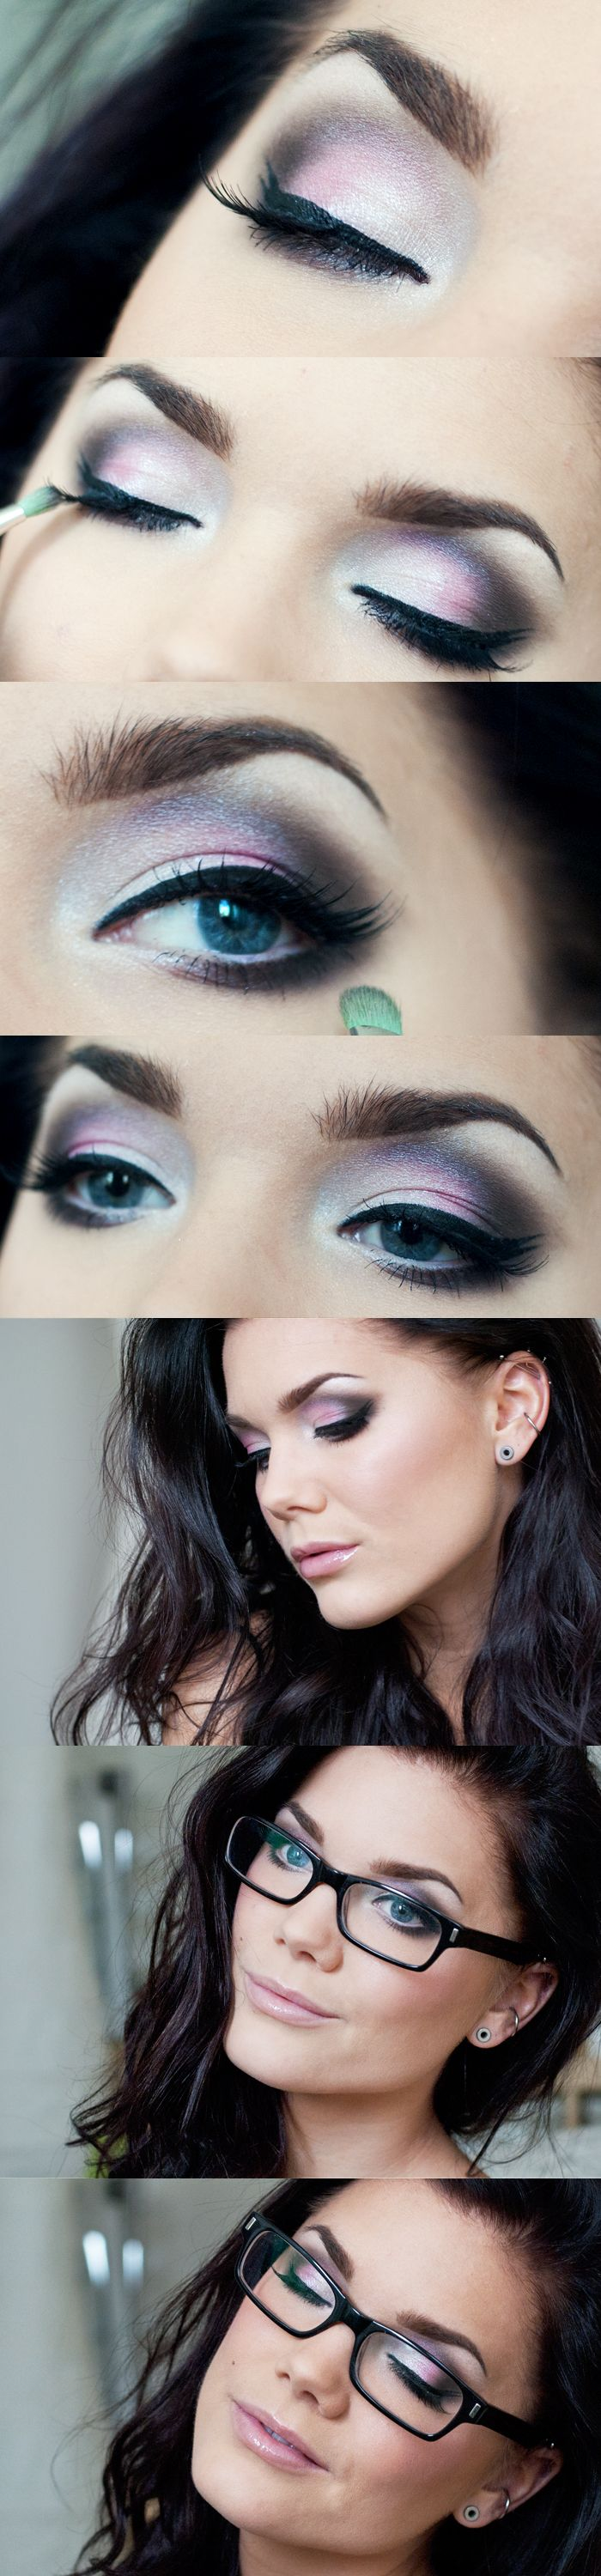 Linda Hallberg Eyeshadow Look I #makeup #cosmetics #beauty #eyes #eyeshadow #face #eyeliner #blush #cheeks #lips #lipstick #lipgloss www.pampadour.com